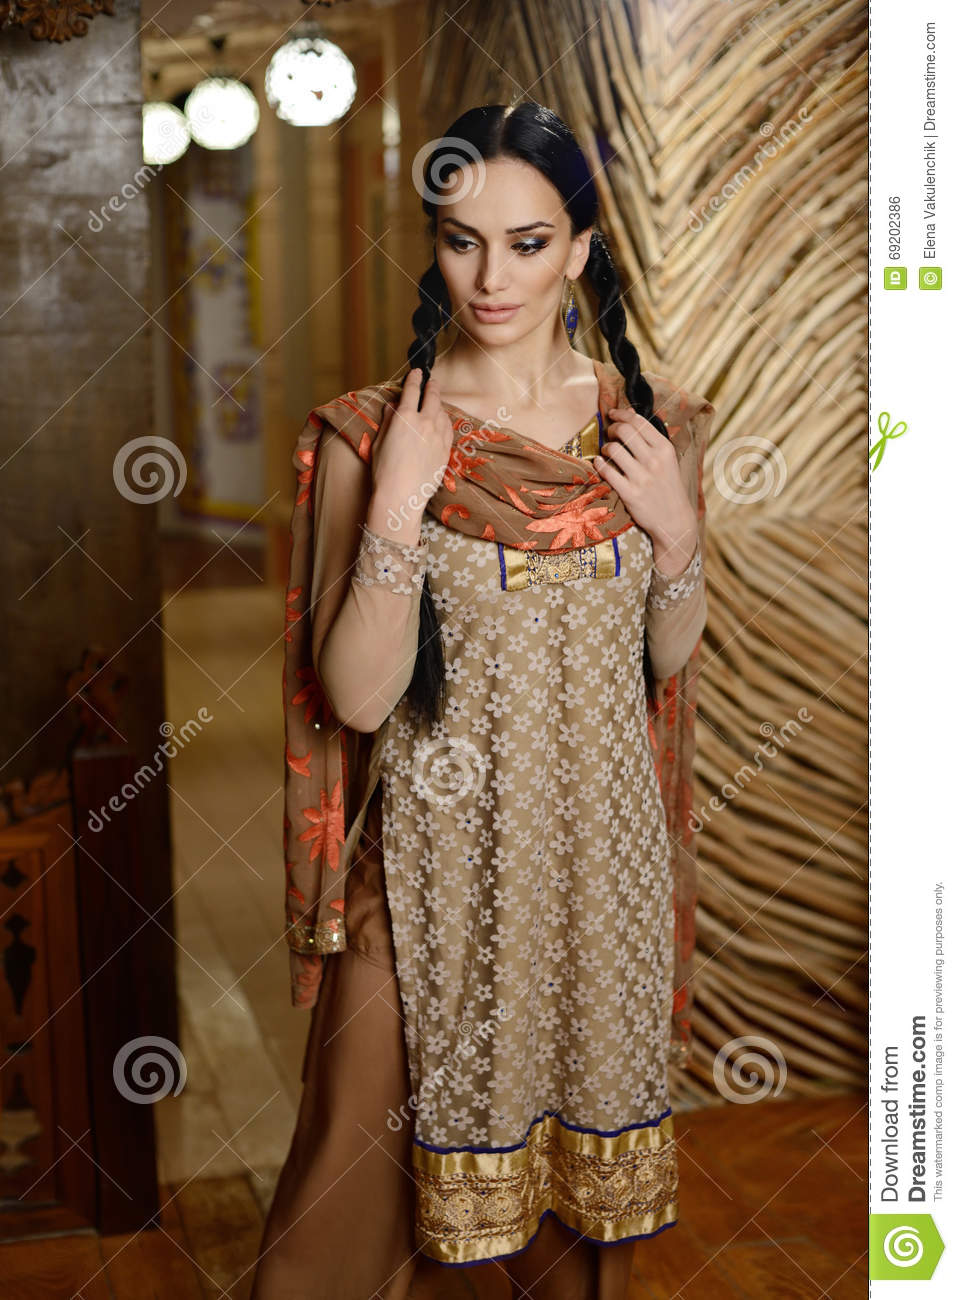 ad4c68d07a Girl In Indian National Clothes Stock Photo - Image of attractive ...